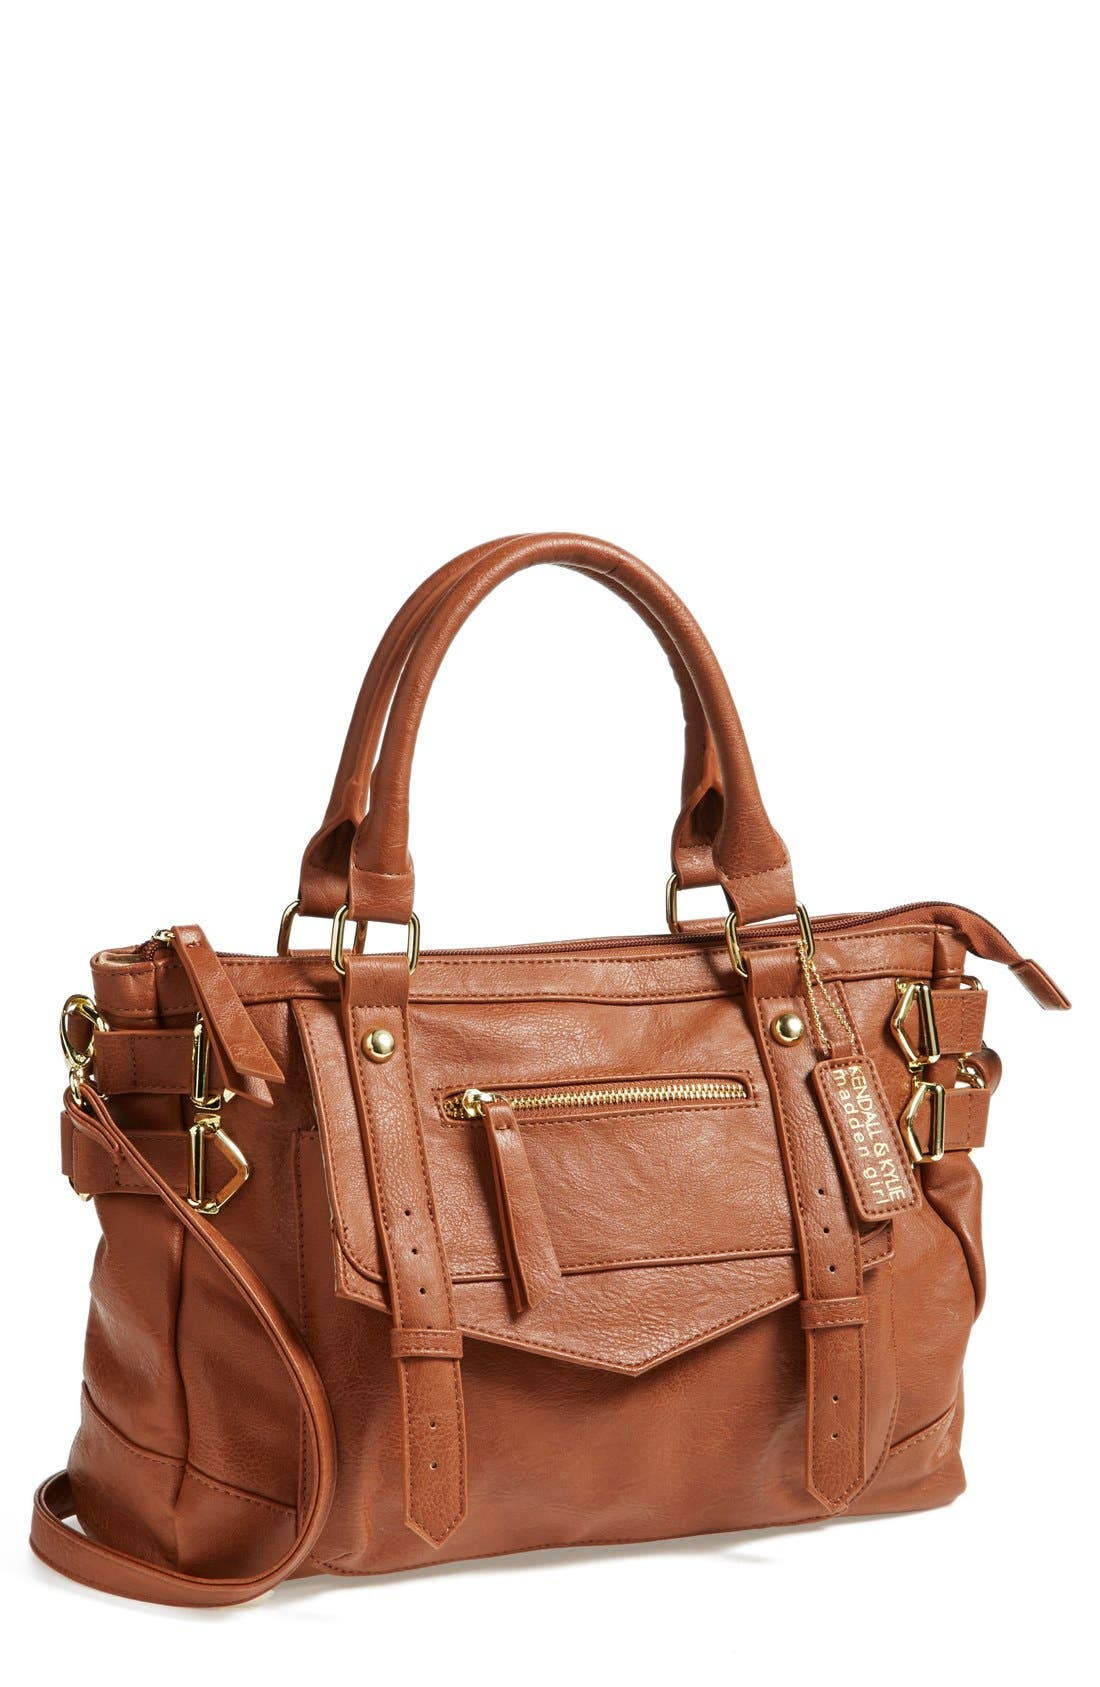 Alternate Image 1 Selected - KENDALL + KYLIE Madden Girl Faux Leather Satchel (Juniors)